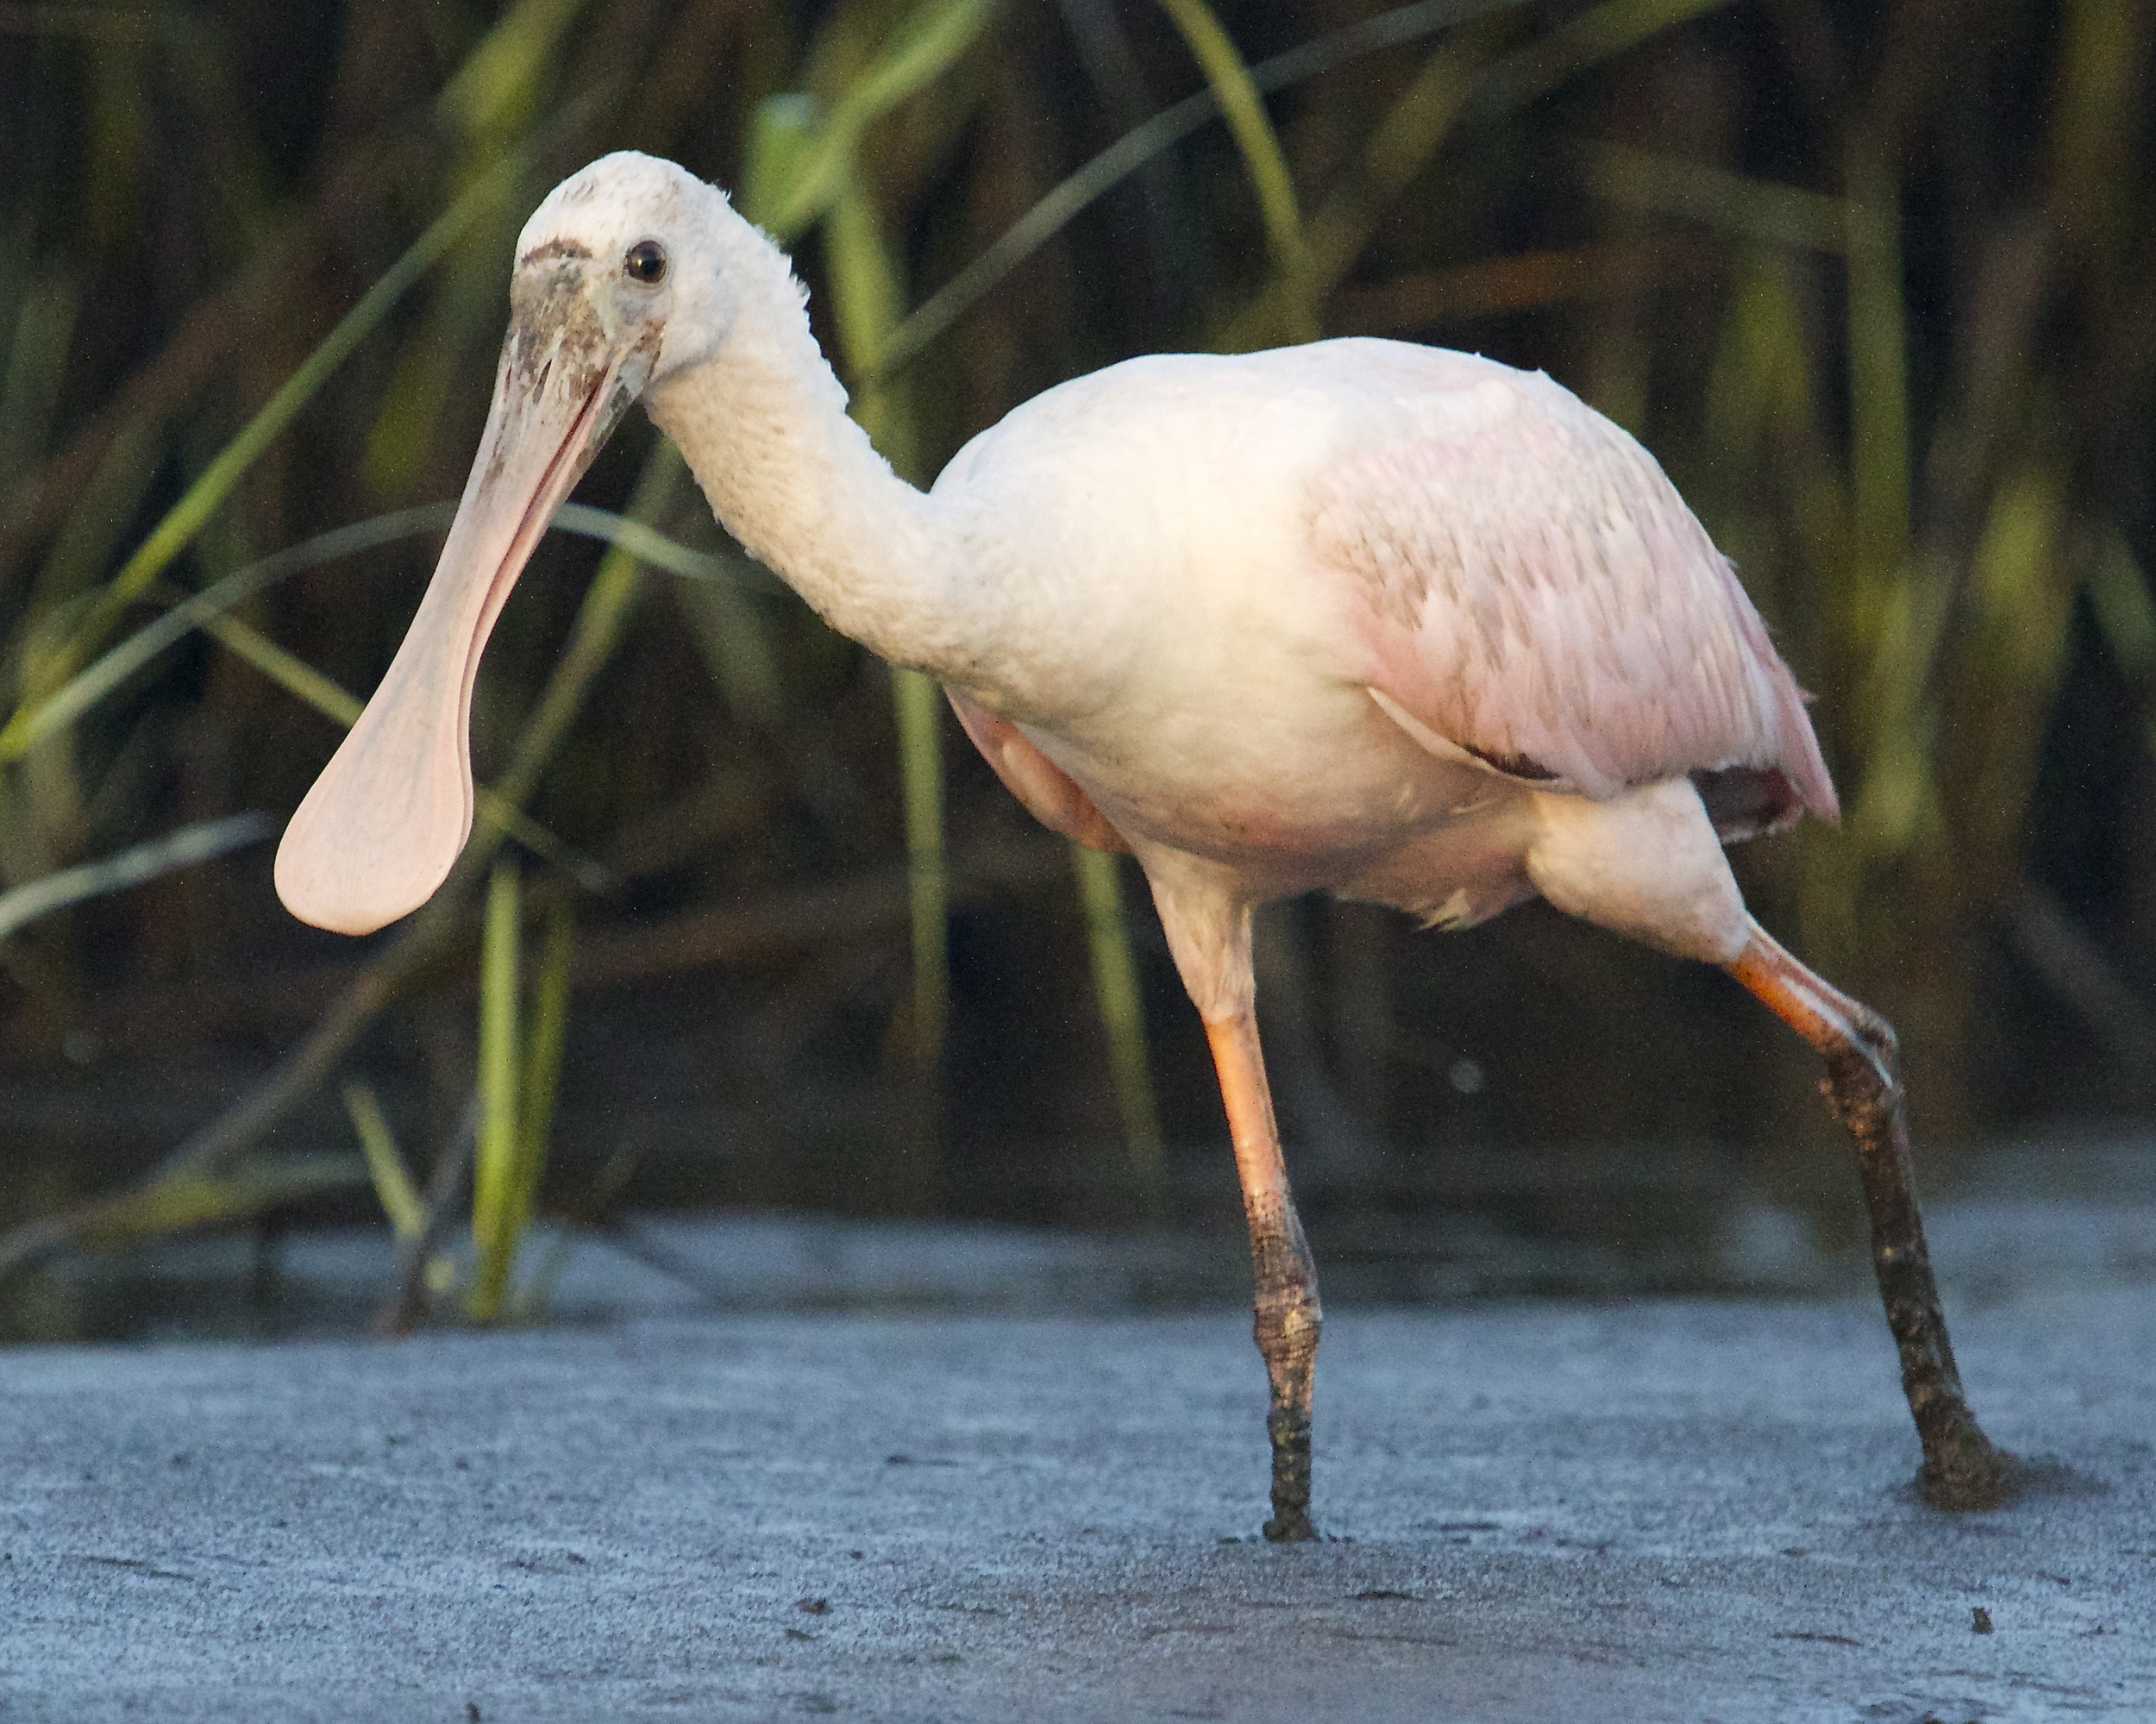 The spoonbill gets out of the water and marches right up to me.